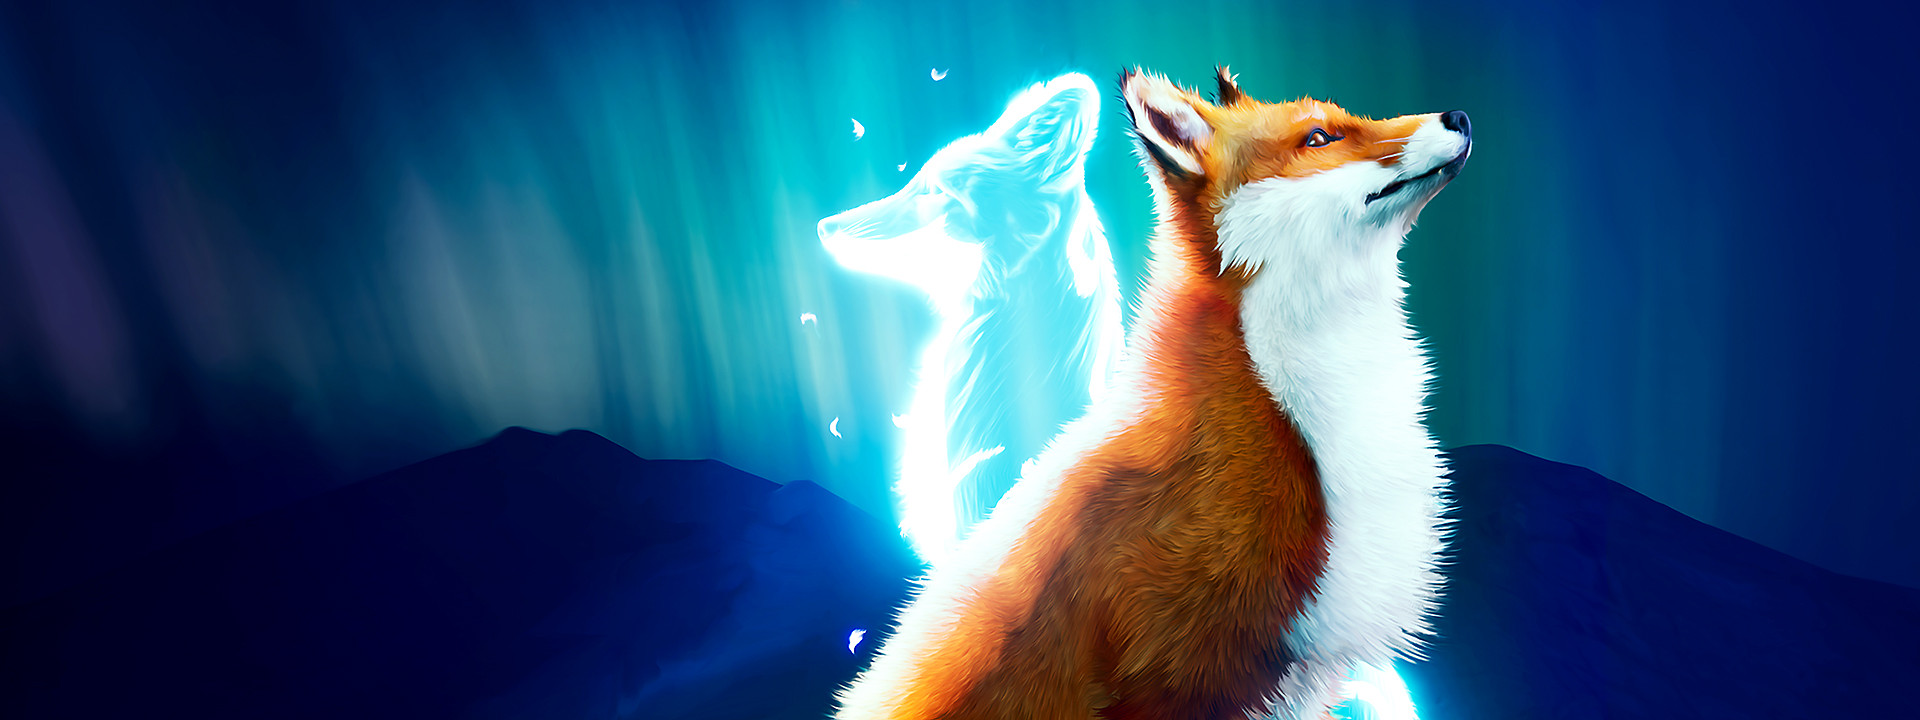 Spirit of the north normalhero 01 ps4 us 28oct2019